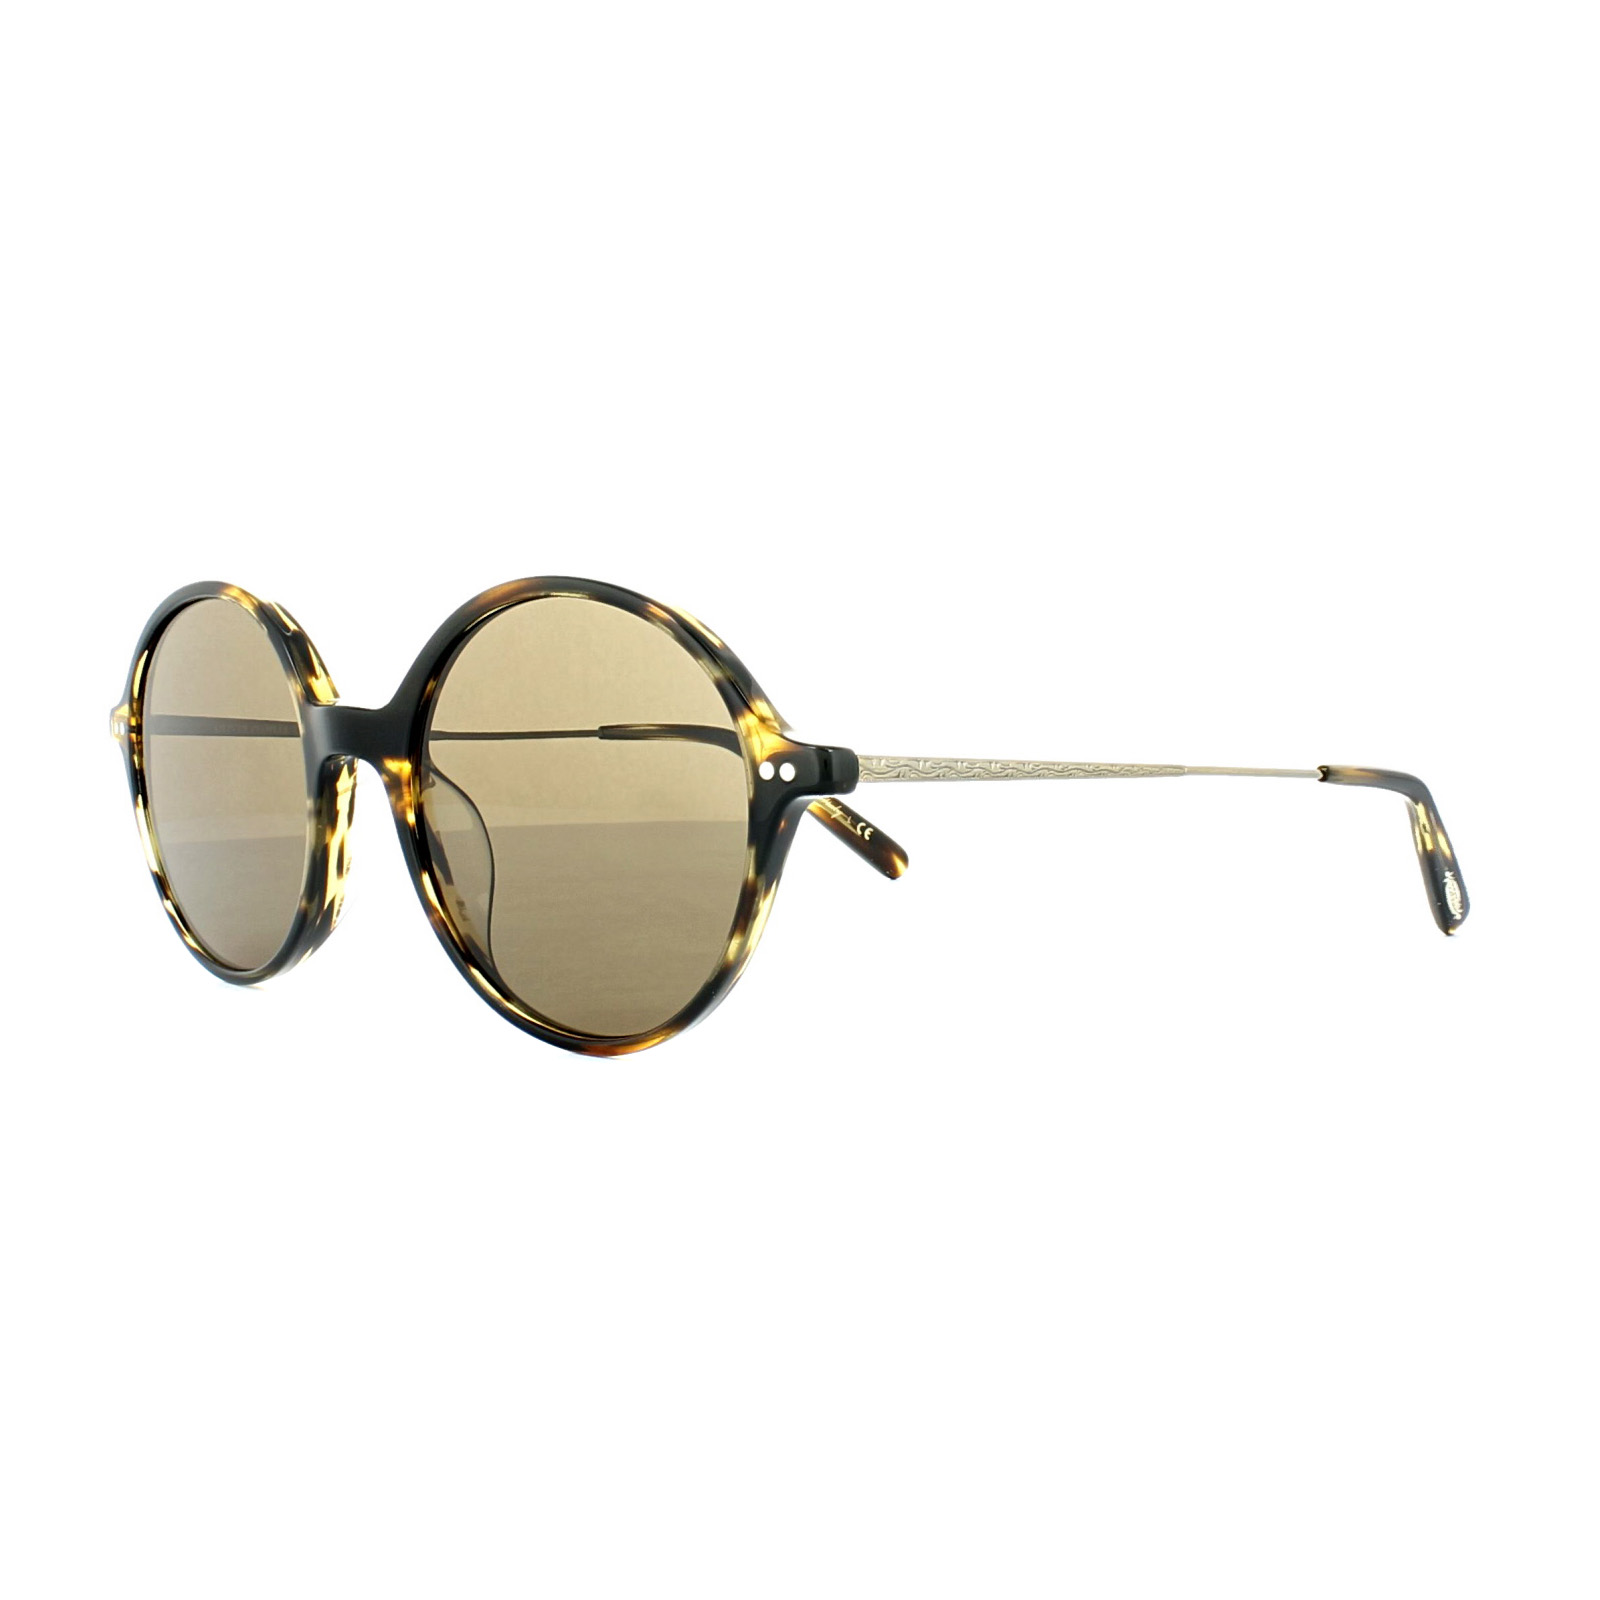 30820faafde Cheap Oliver Peoples Corby 5347SU Sunglasses - Discounted Sunglasses Cheap  Oliver Peoples Bernardo 5189 ...